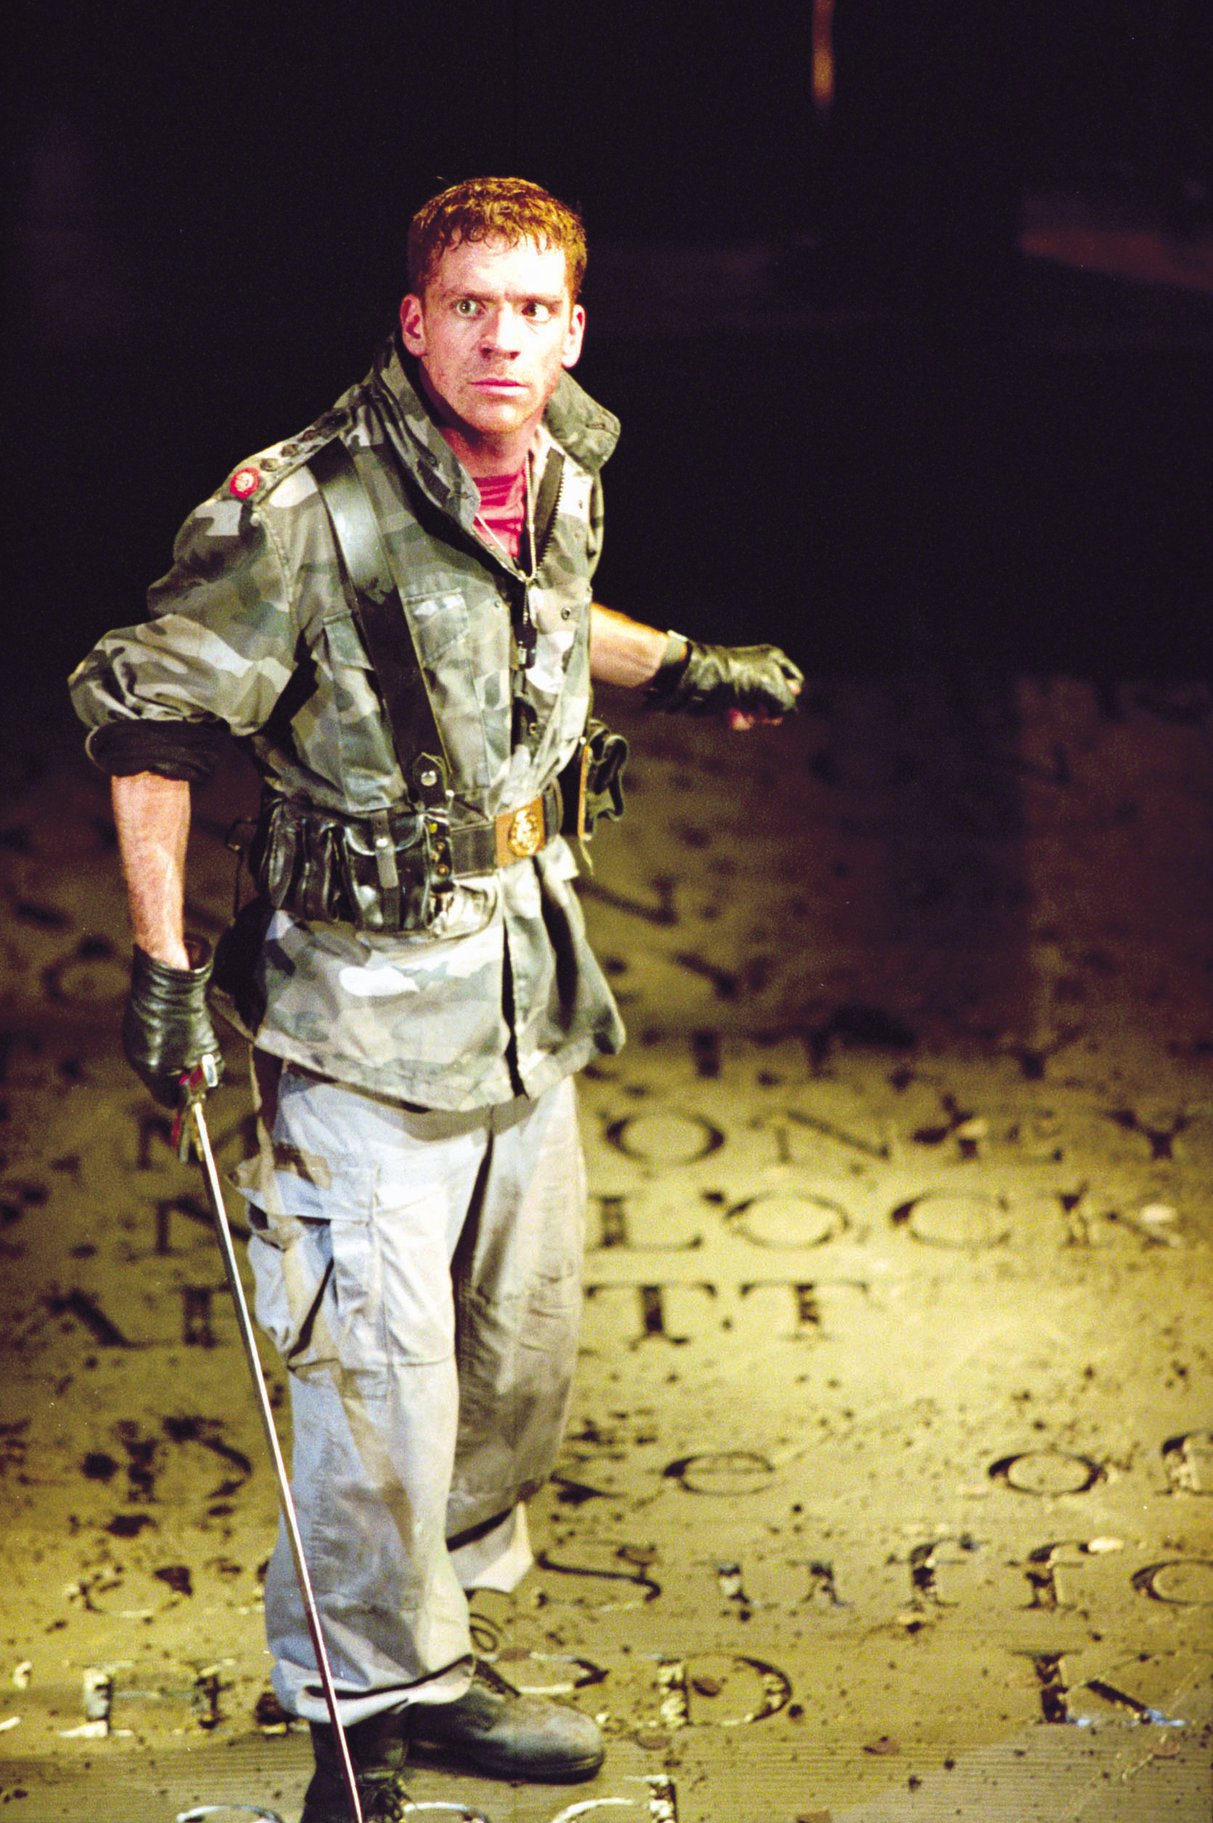 Henry dressed in camouflage and khakis holds a sword in battle in the 2000 production of Henry V